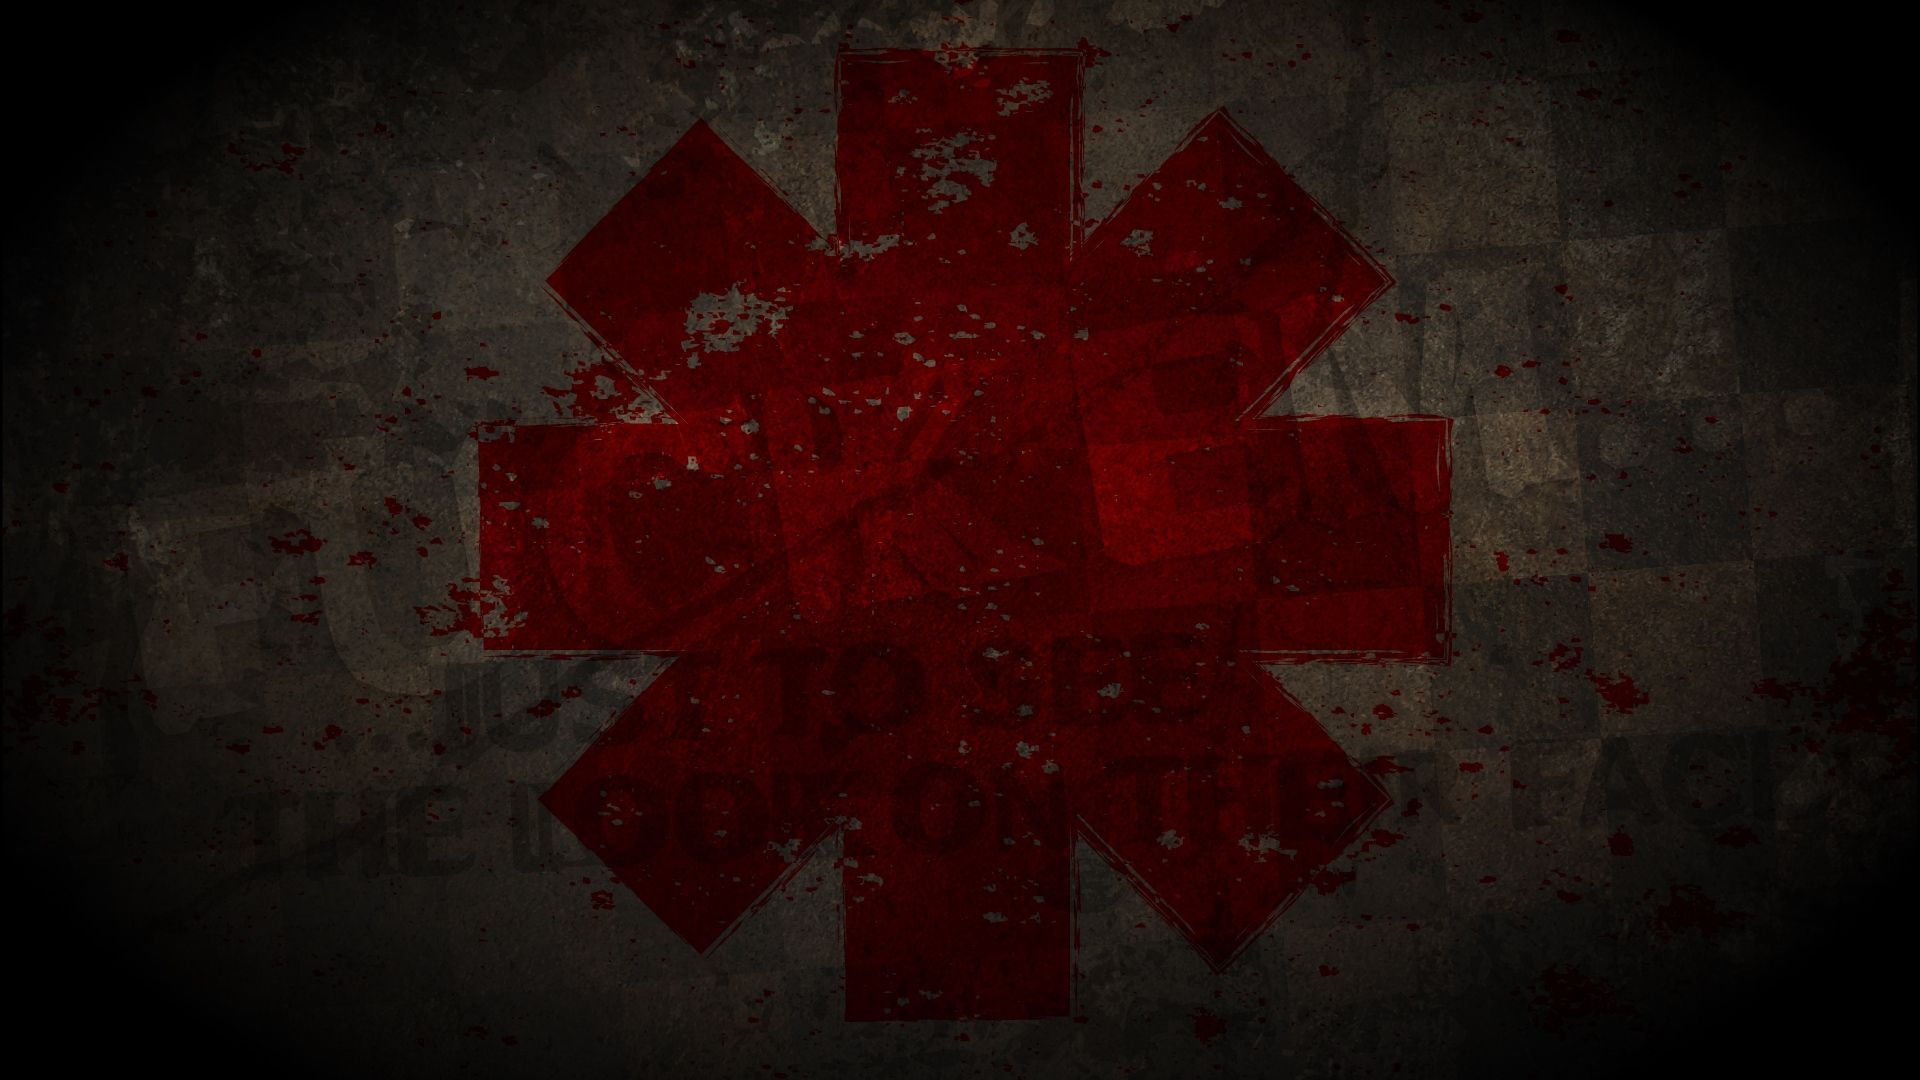 1920x1080-red-hot-chili-peppers-symbol-graphics-spray-background-wallpaper-wp360908